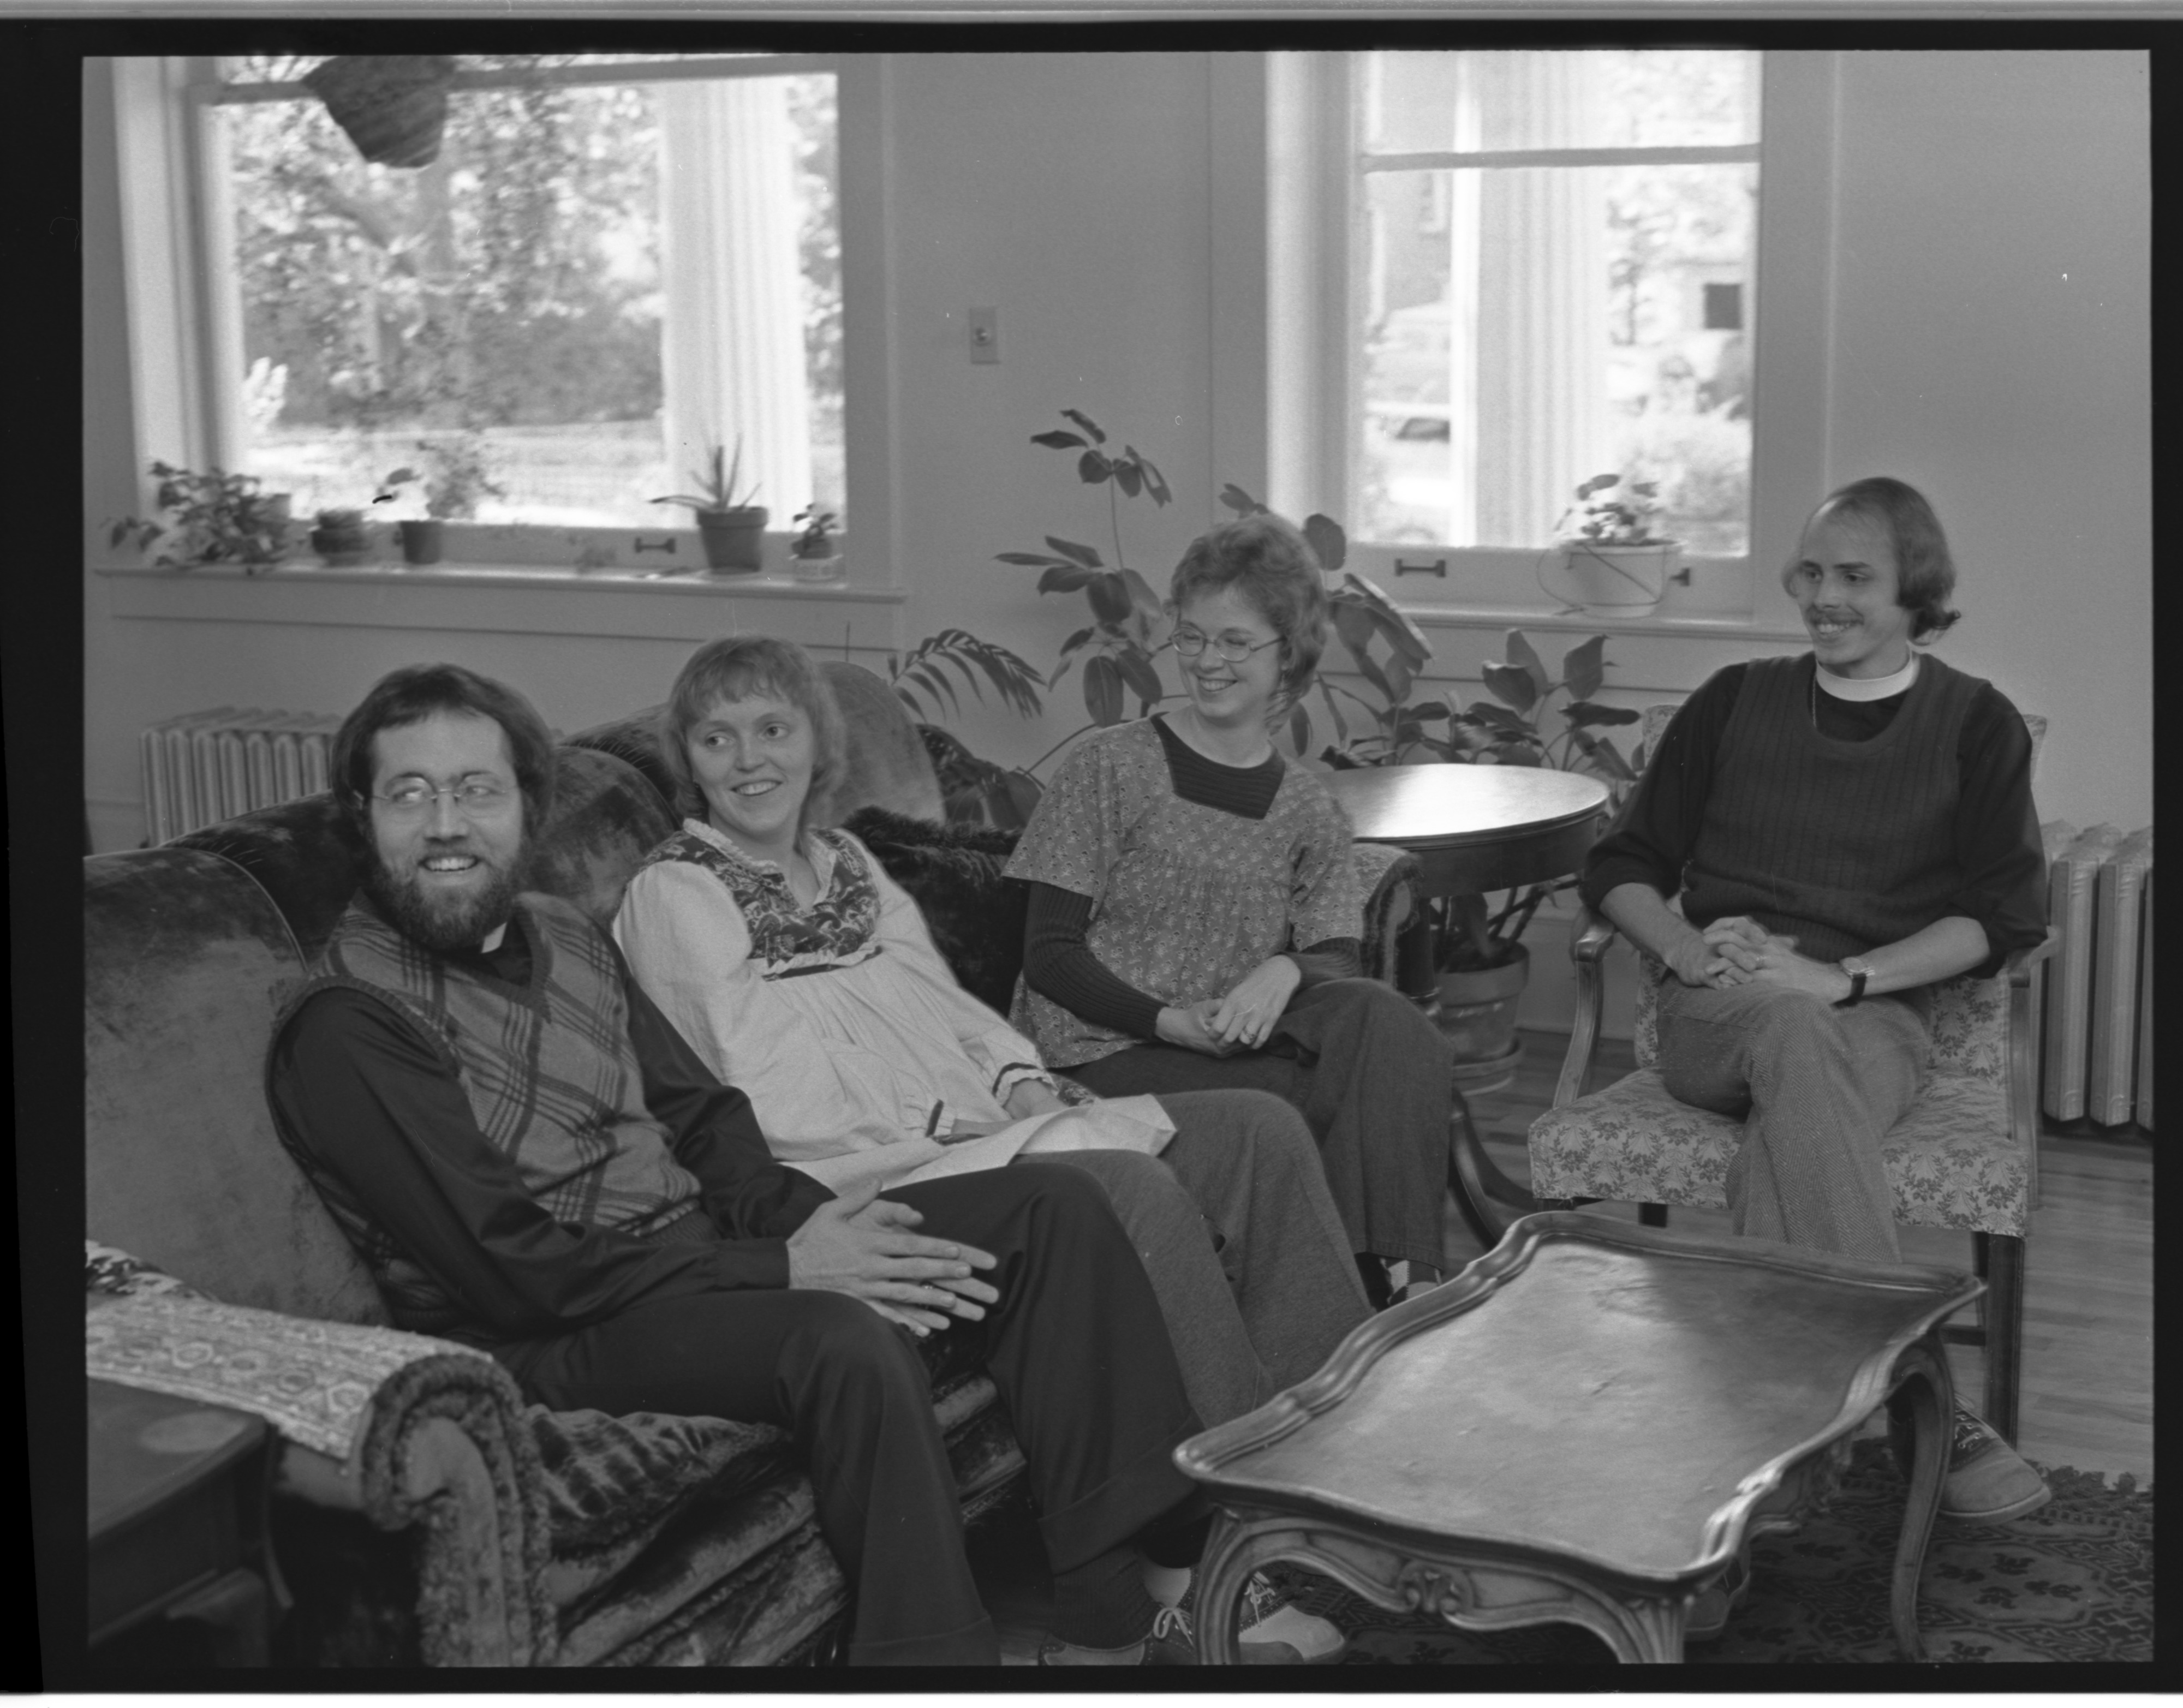 Canterbury House Ministers & Wives: Rev and Mrs. Andrew Foster Rev. and Mrs. Bruce Campbell, October 1973 image